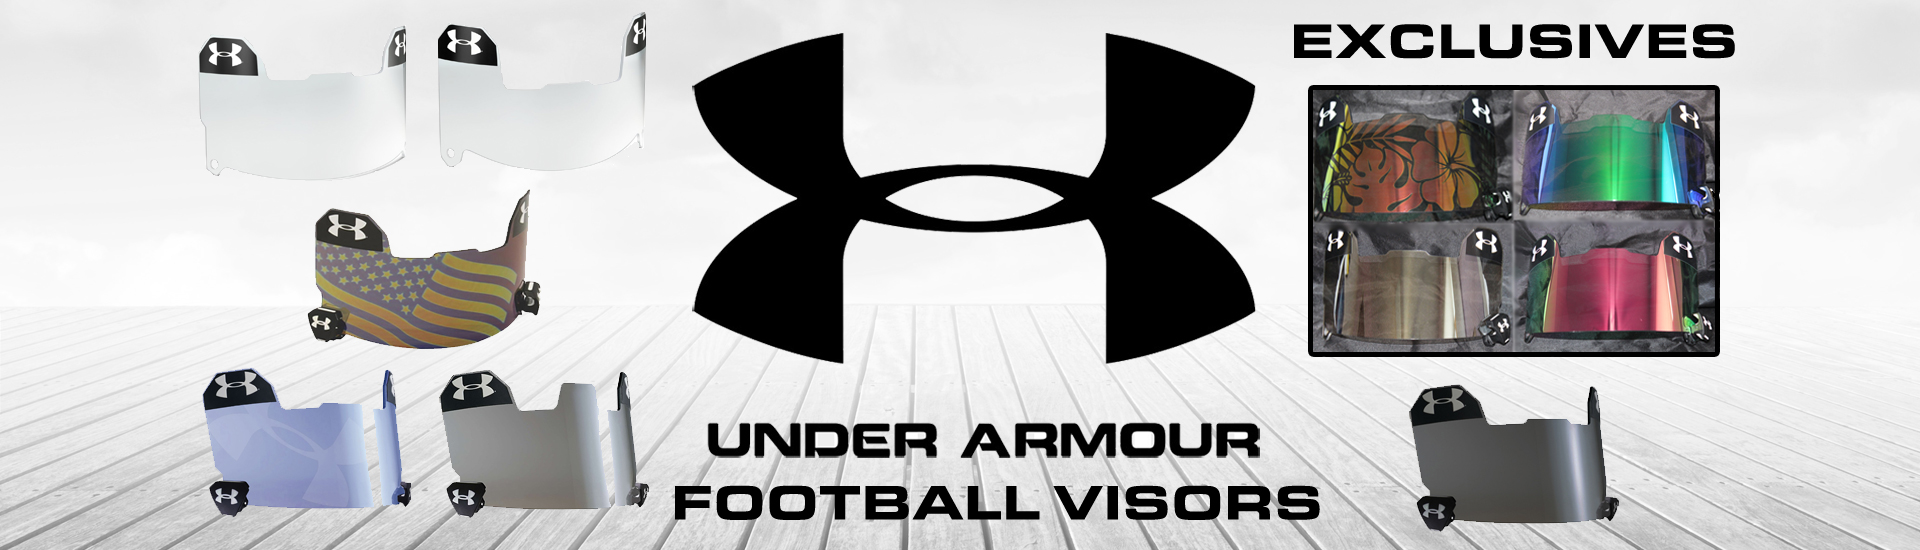 Under Armour Football Visors